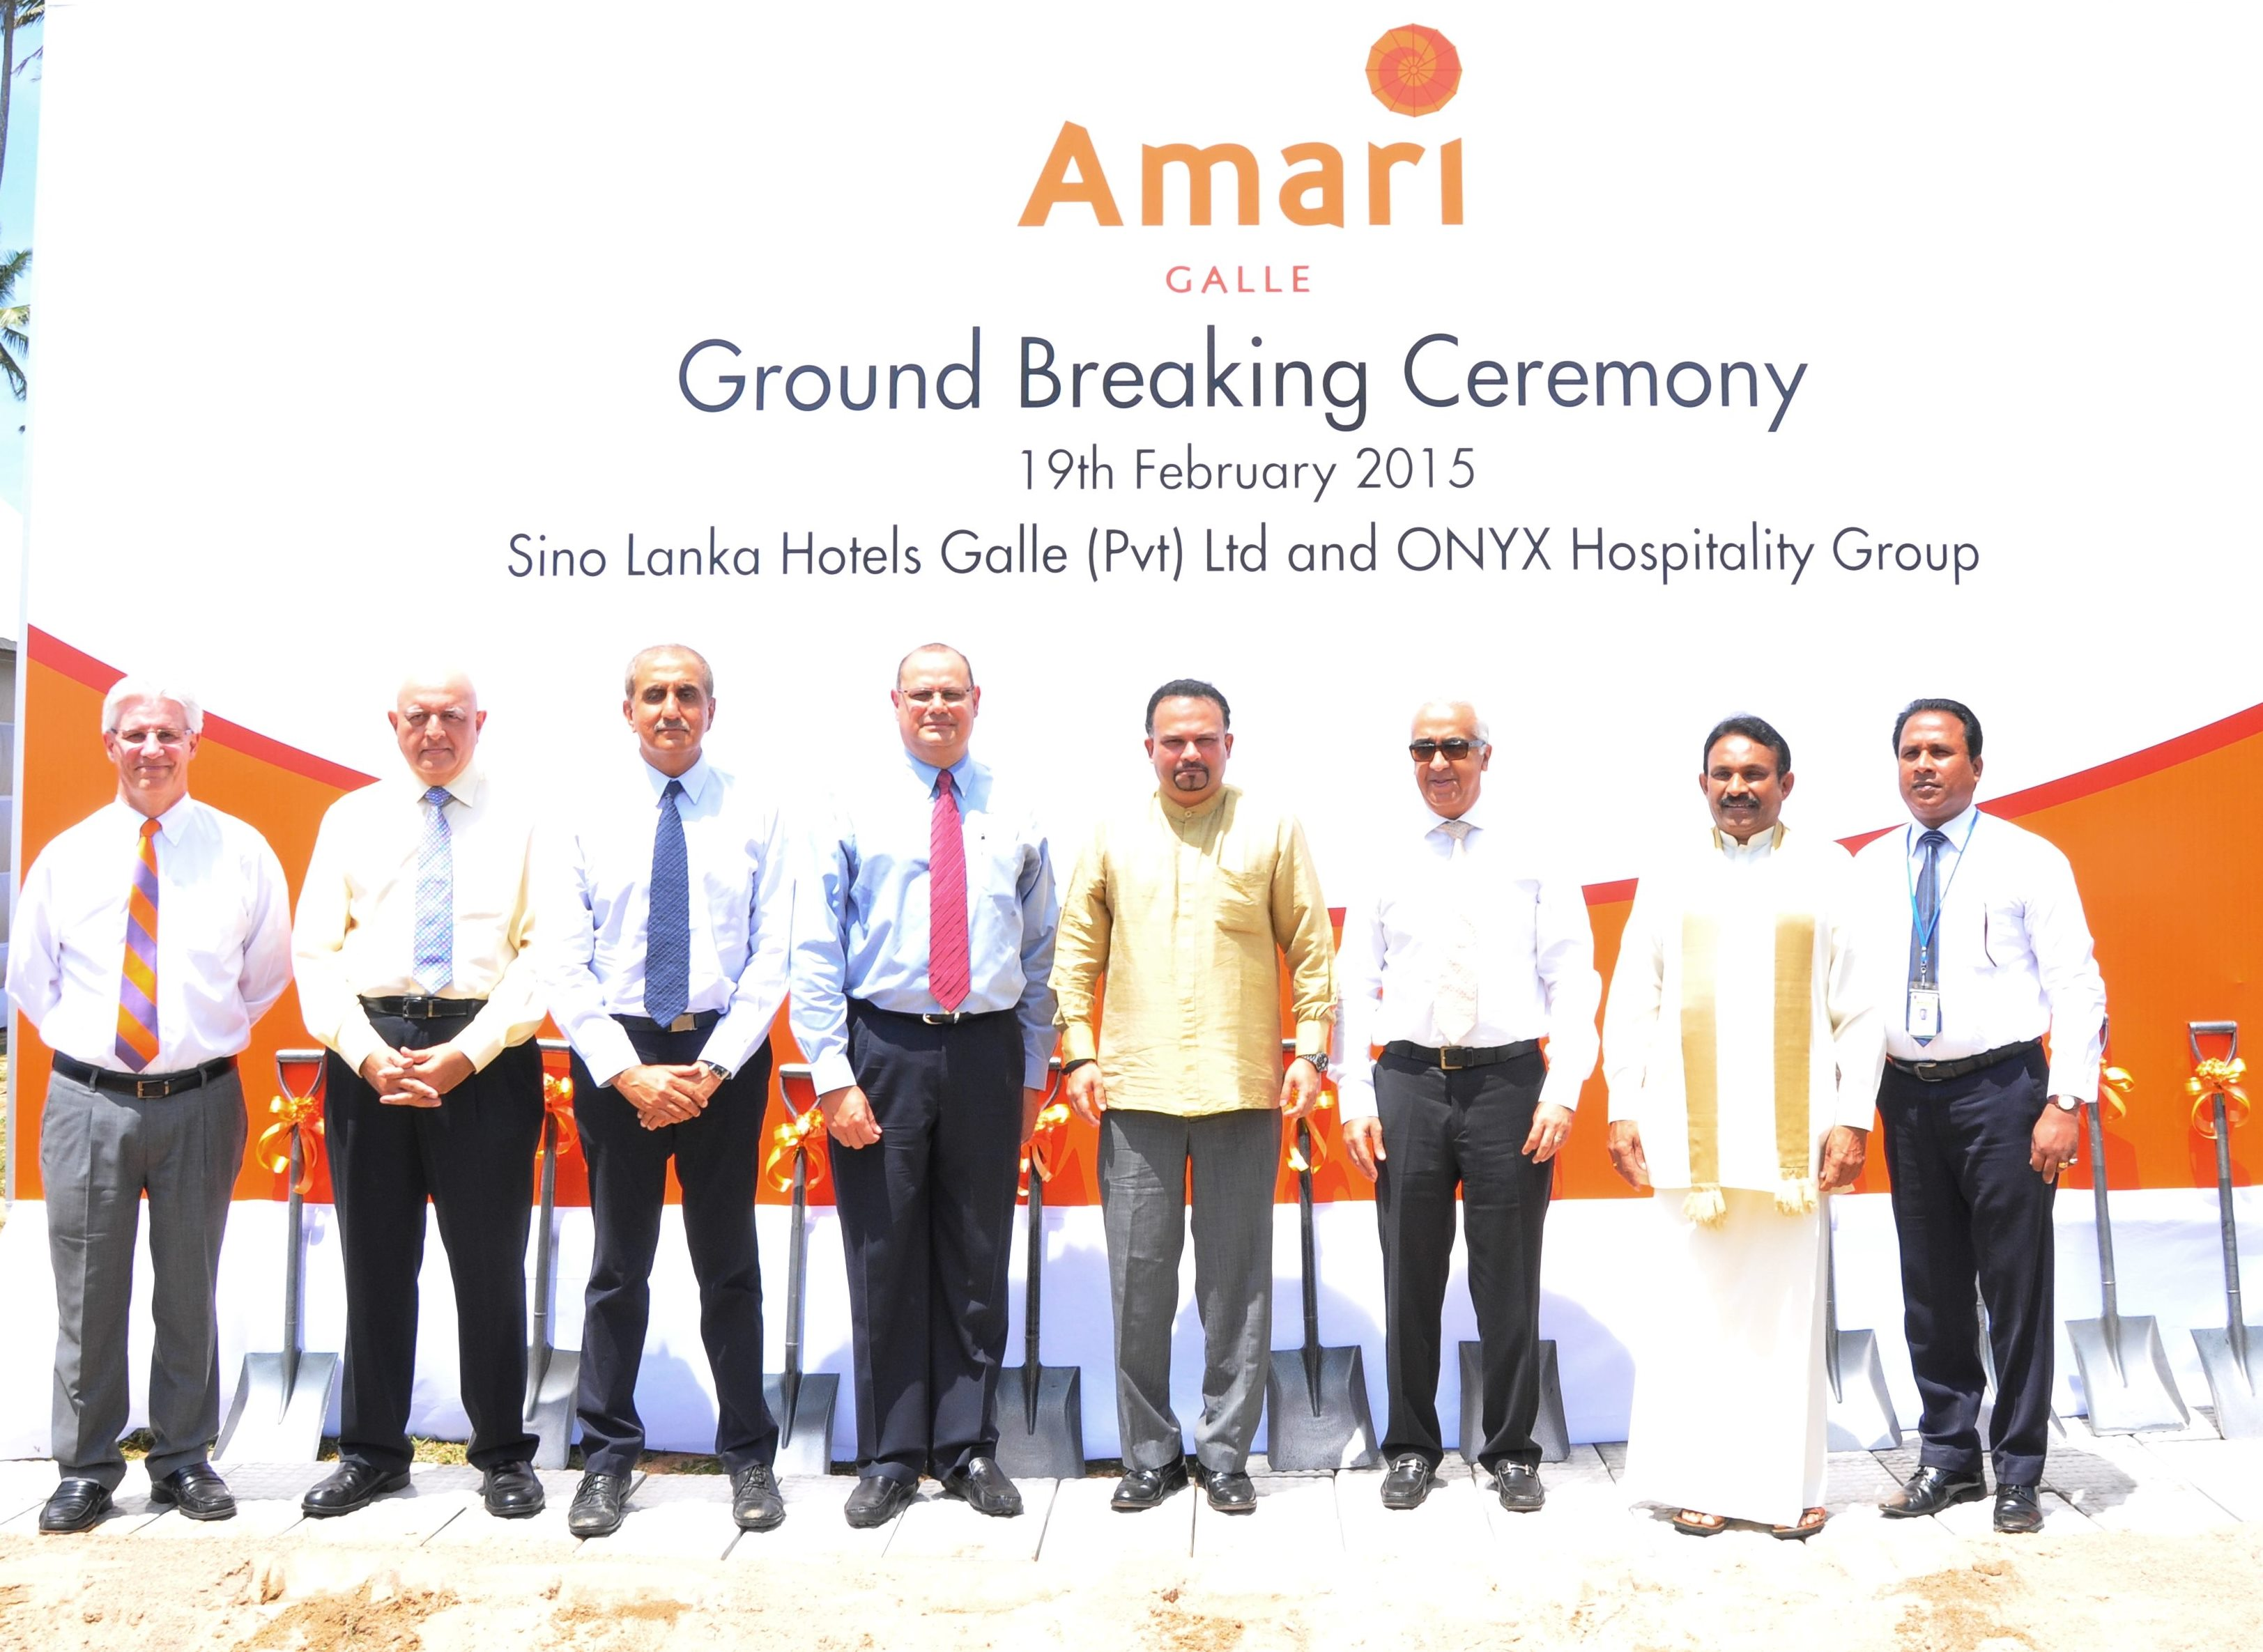 Construction For Amari's First Hotel In Sri Lanka Begins